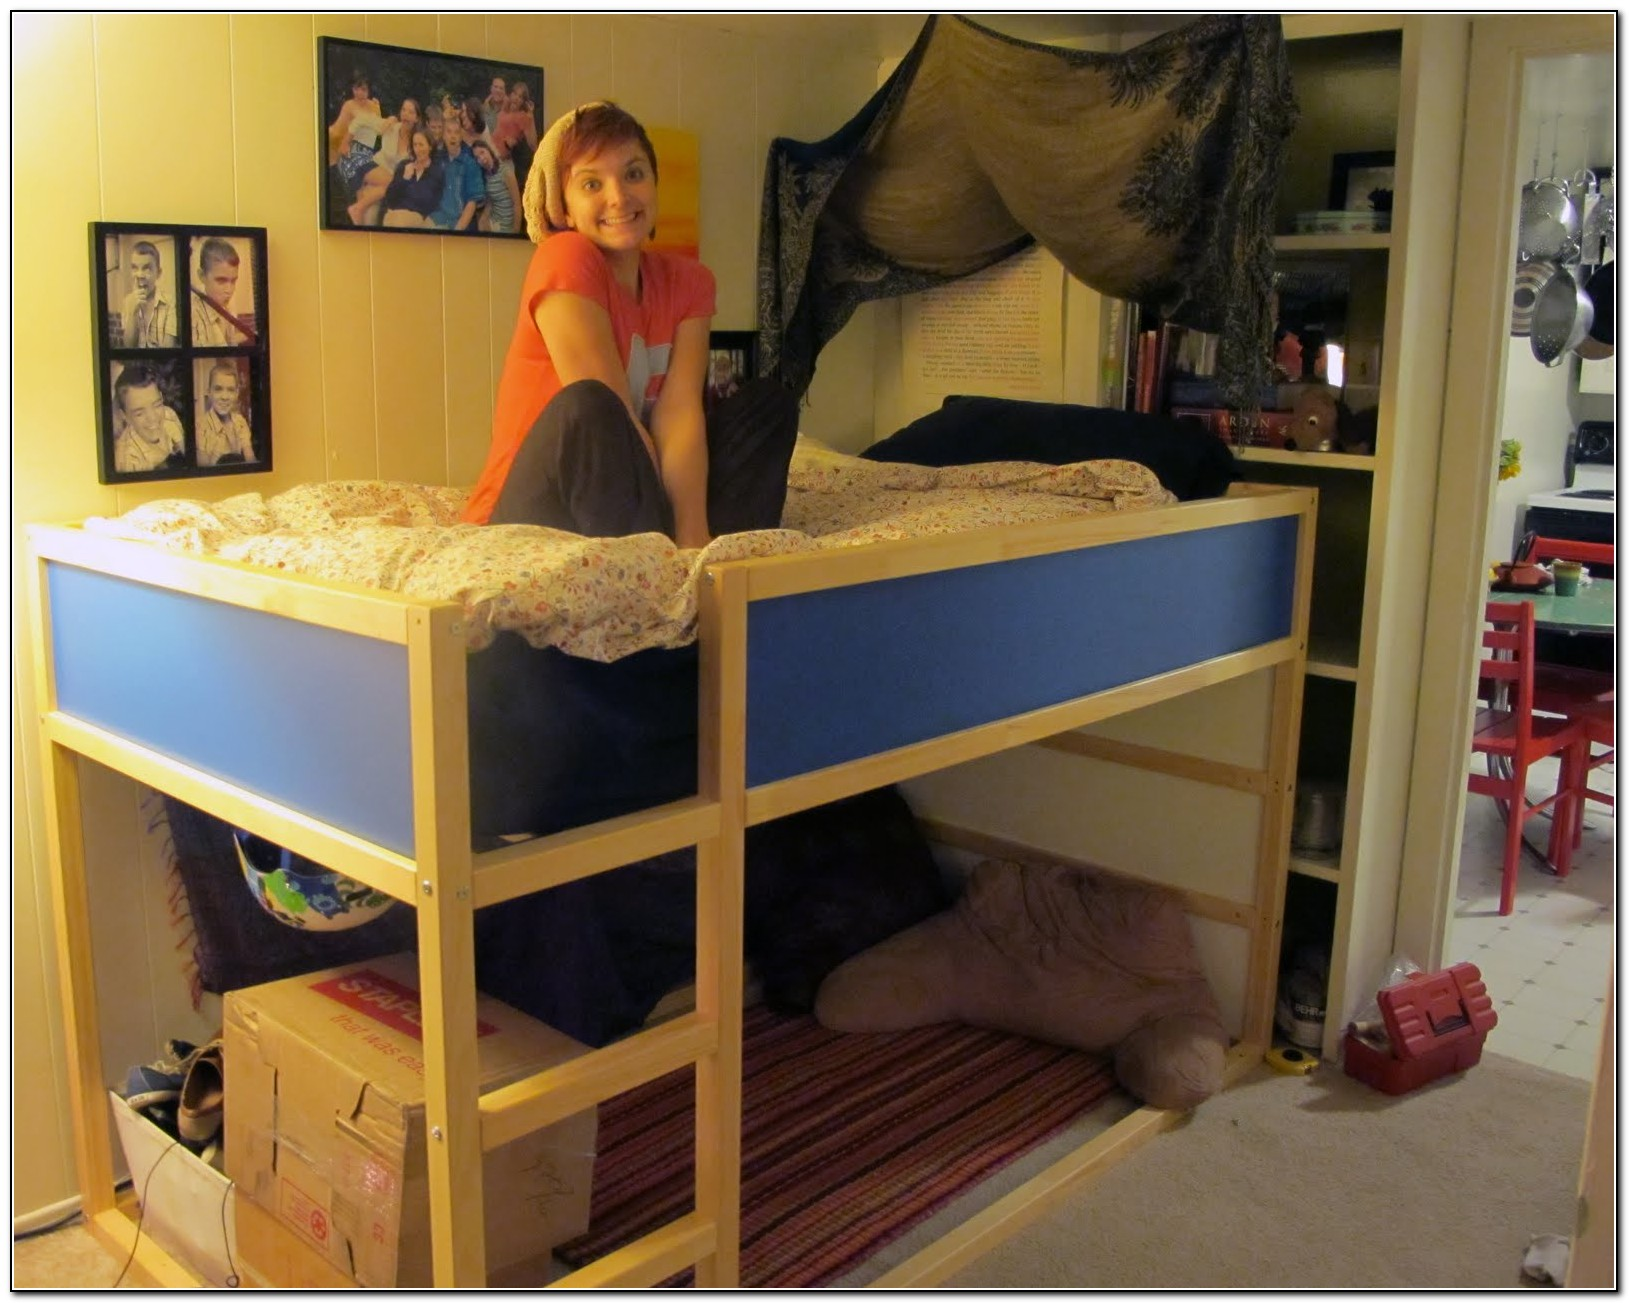 bedroom-cozy-loft-bed-for-teen-girl-with-sliding-curtain-door-on_door-bed-bunk-bed_bedroom_modern-bedroom-sets-4-house-for-rent-dressers-how-to-decorate-a-girls-eyes-paint-colors-kids-furniture-3-hous